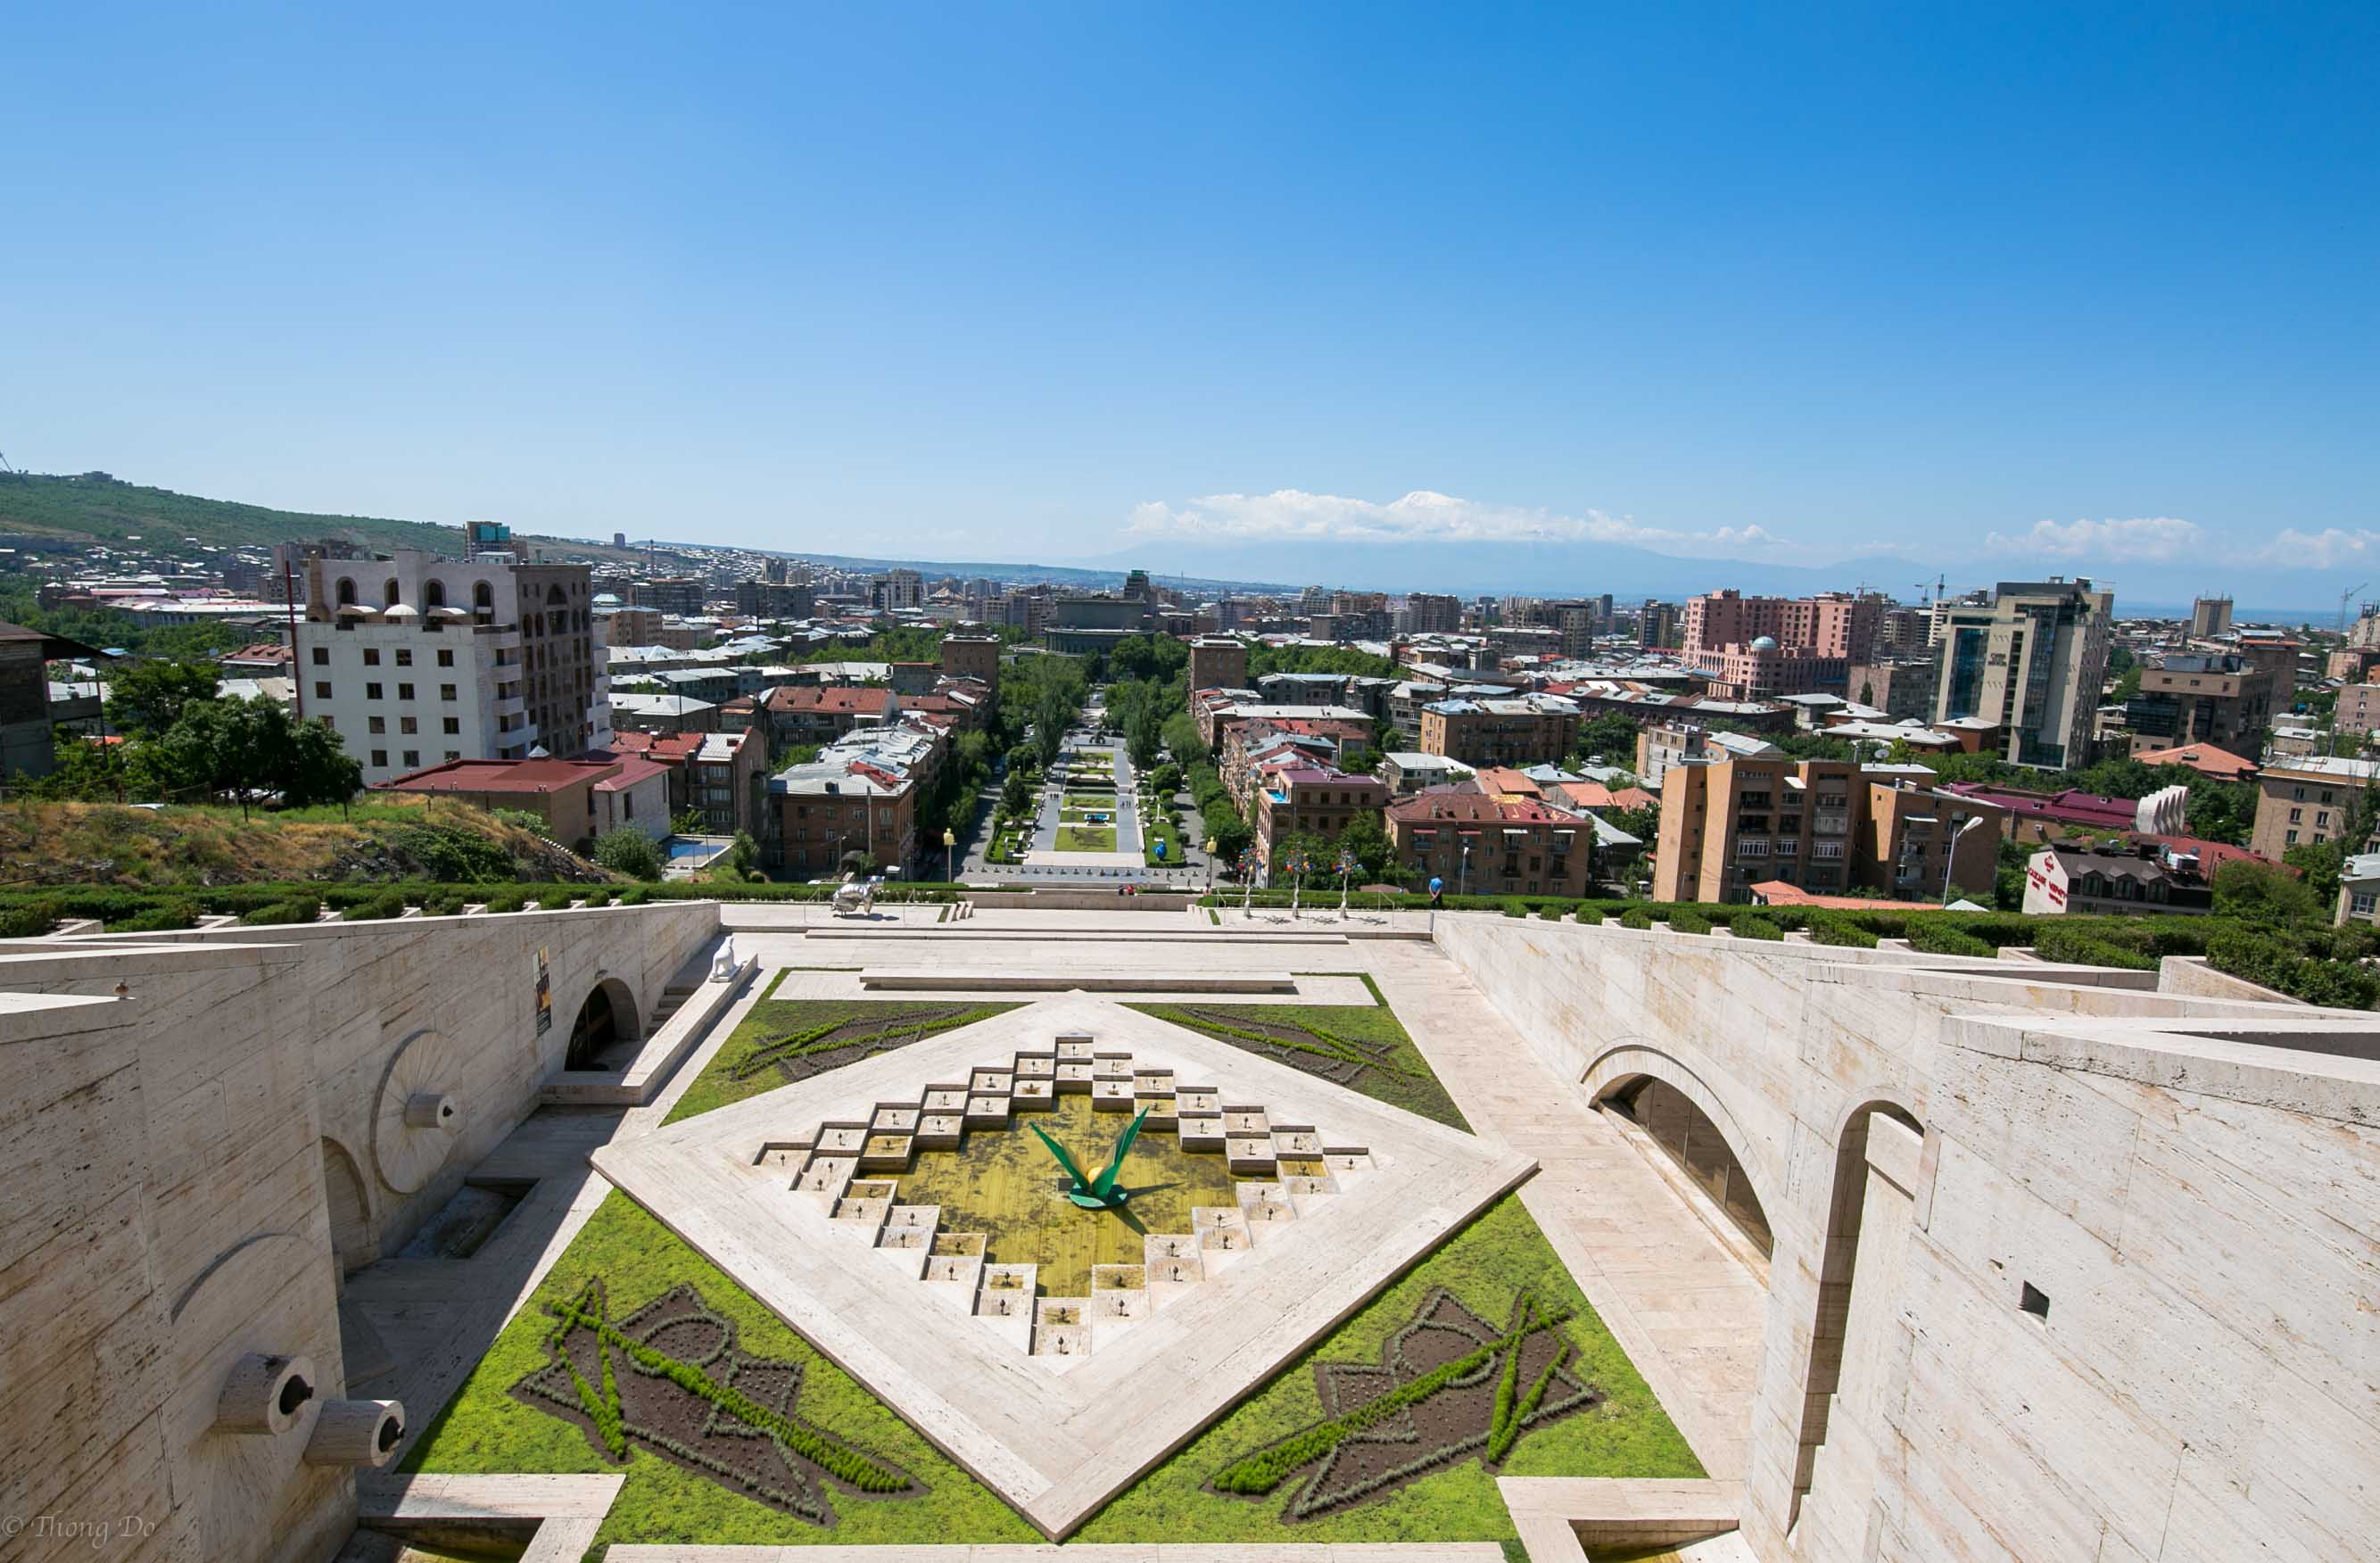 If you manage to make your way to the very top the first thing you'll  notice is an enormous monument and a bird's eye view of Yerevan.